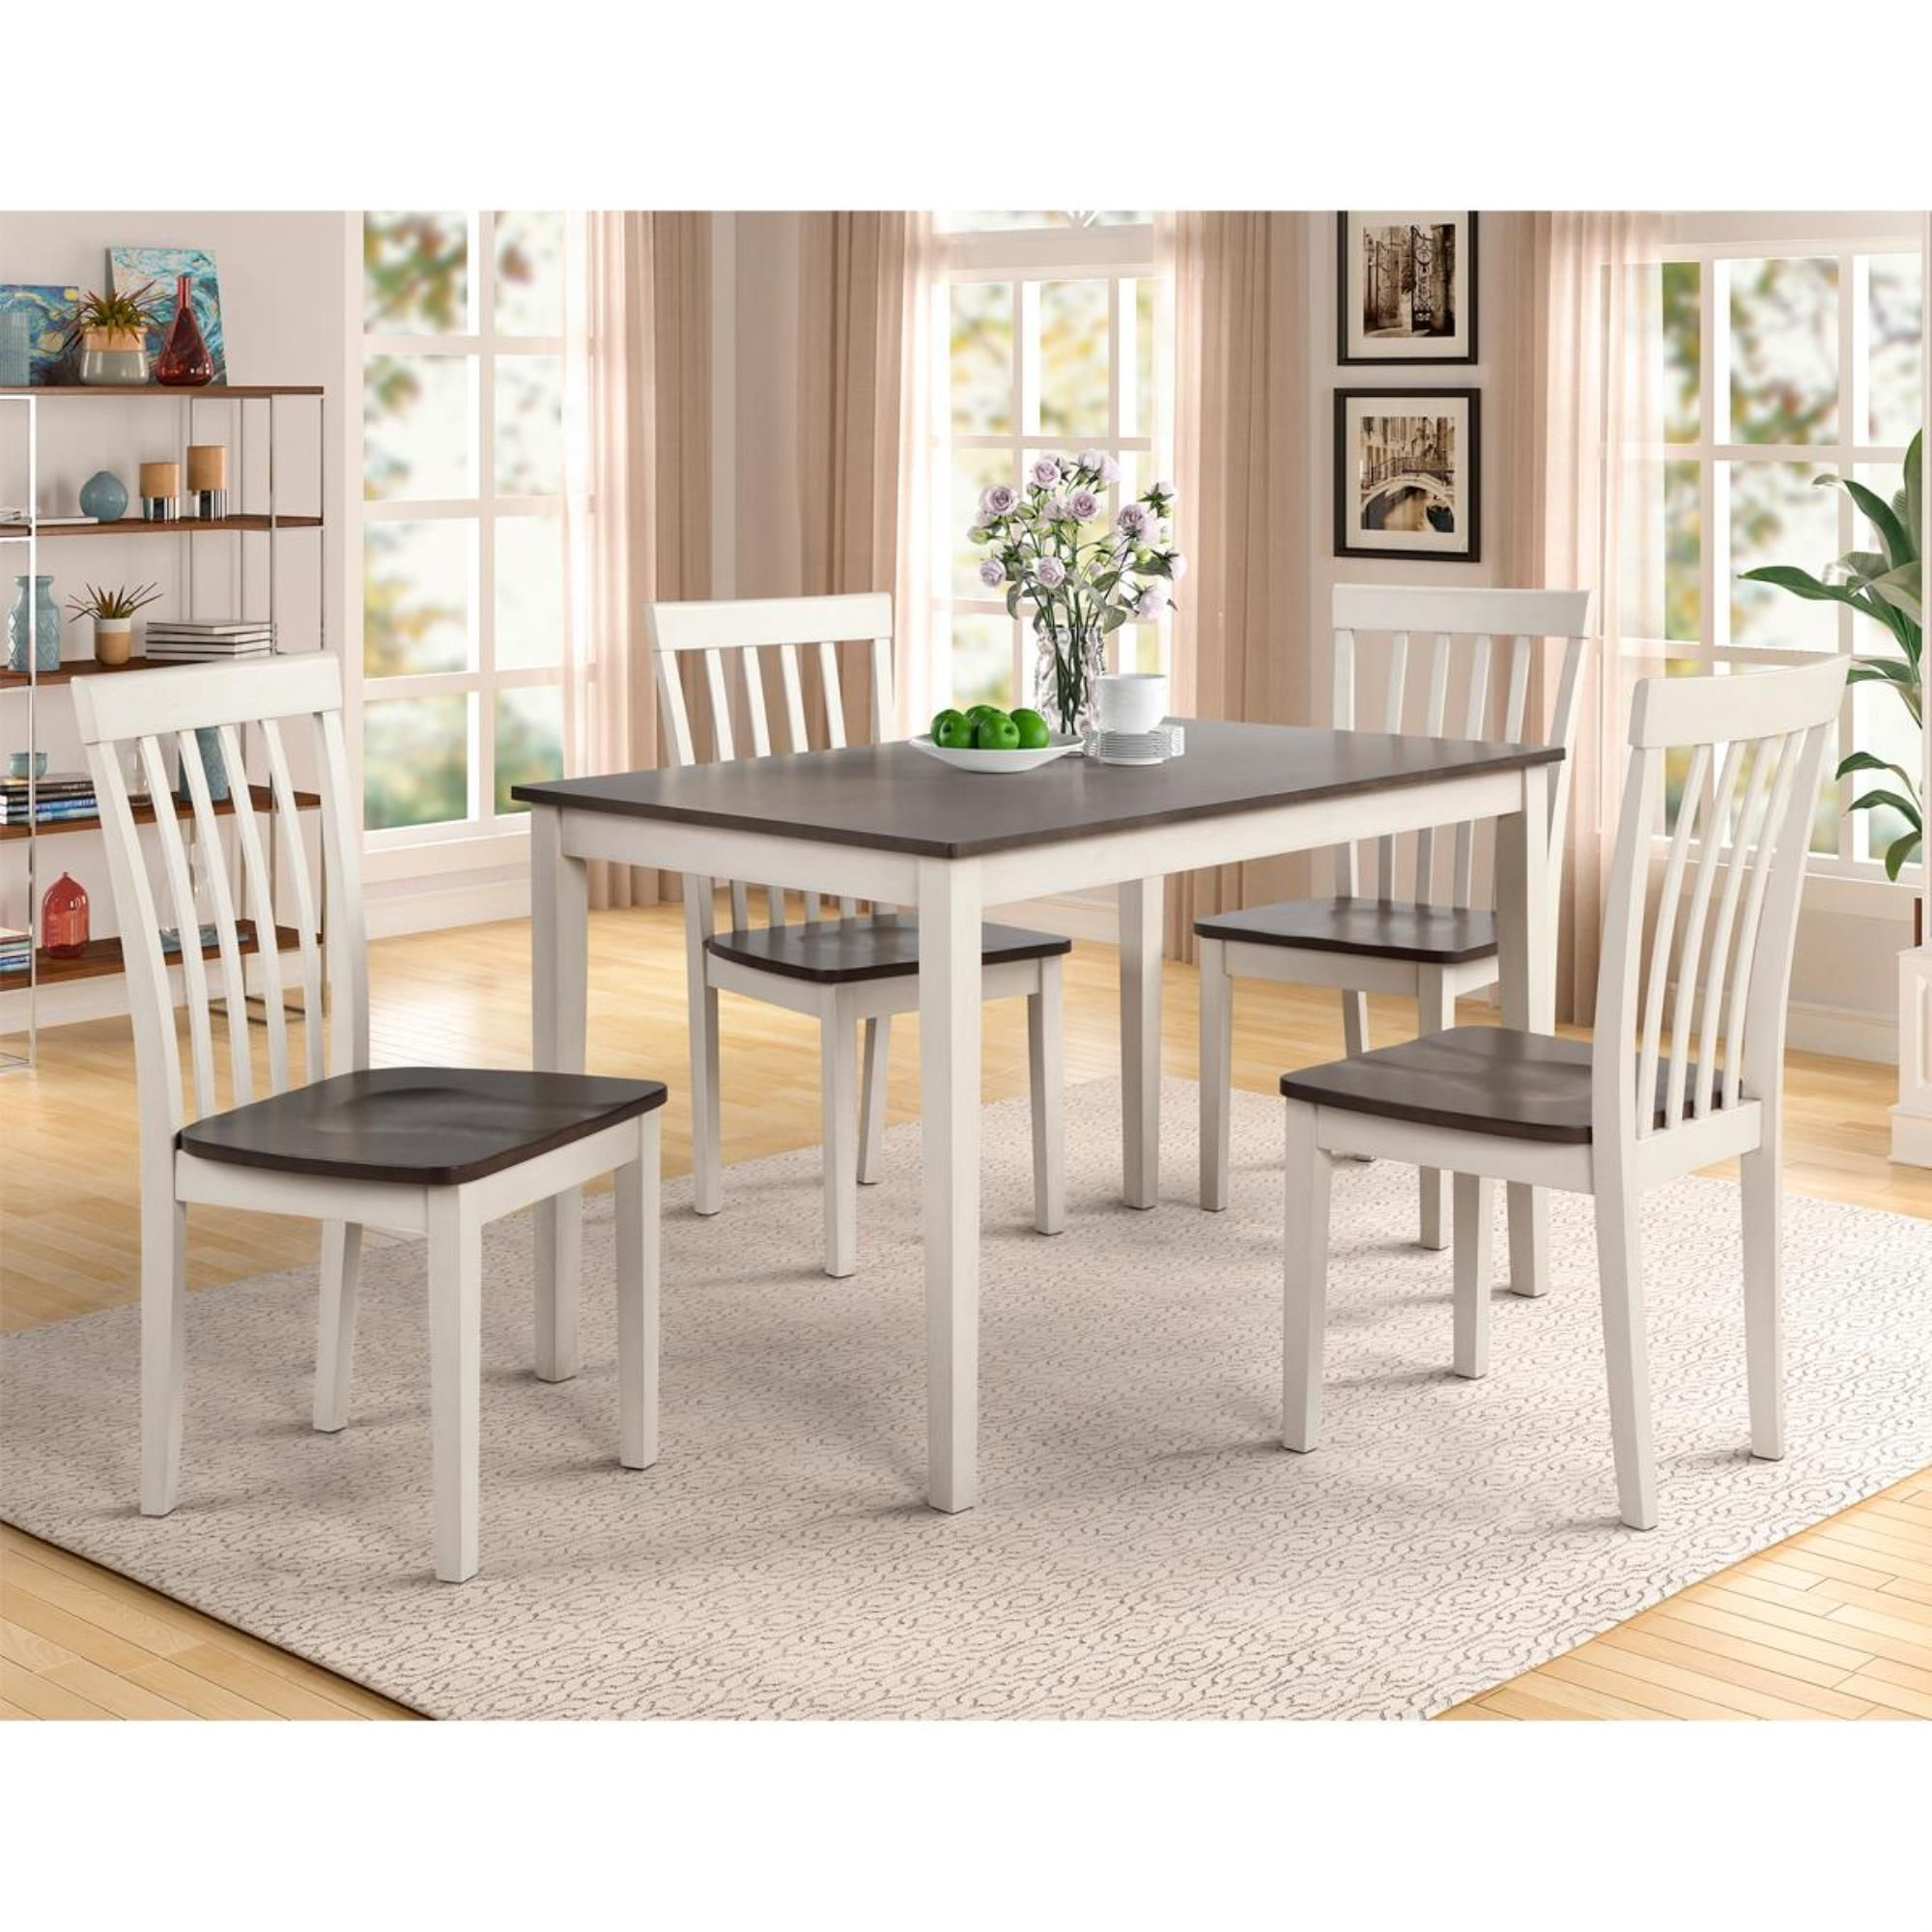 Claremont Brody 5 Piece Dining Set In White And Grey Nebraska Furniture Mart In 2020 Dinette Sets White Dining Room Dining Room Sets